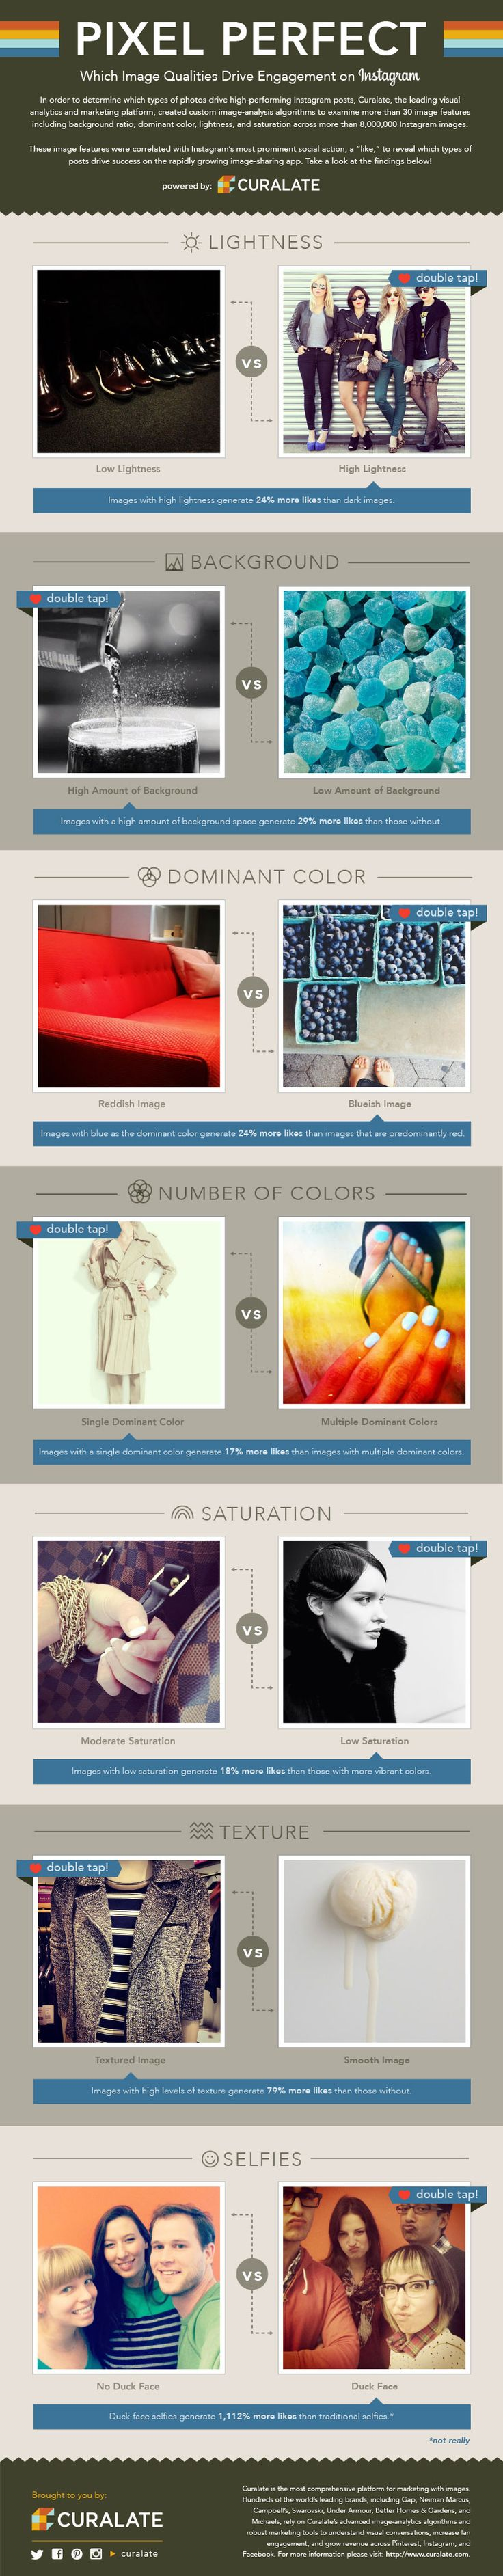 Visual content marketing tips to increase engagement on Instagram